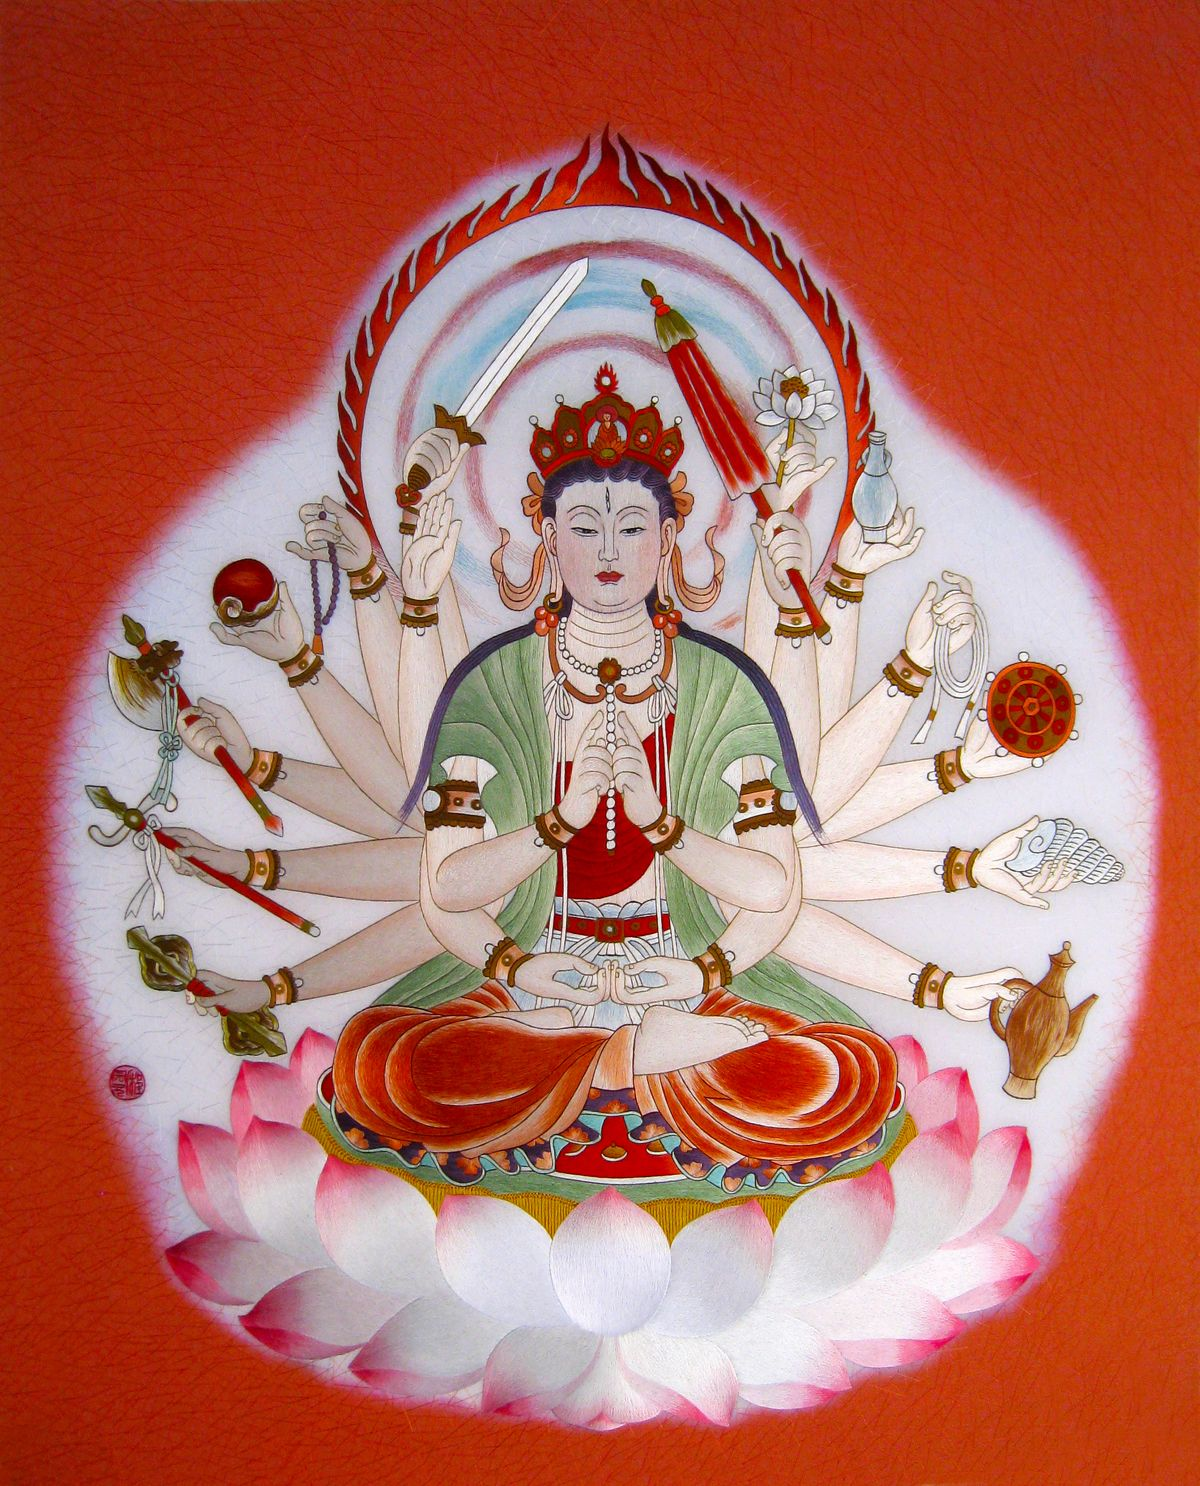 Guanyin with Full Hands #Handmade #Silk #Embroidery #Art 75166 http://www.queensilkart.com/100-handmade-embroidery-framed-people-guanyin-with-full-hands-75166/ The popularization of Buddhism in China has made the country home to one of the richest collections of Buddhist arts in the world. Buddhist art in China generally depicts notable Buddhist figures, both historical and mythical and narrative scenes from their lives.